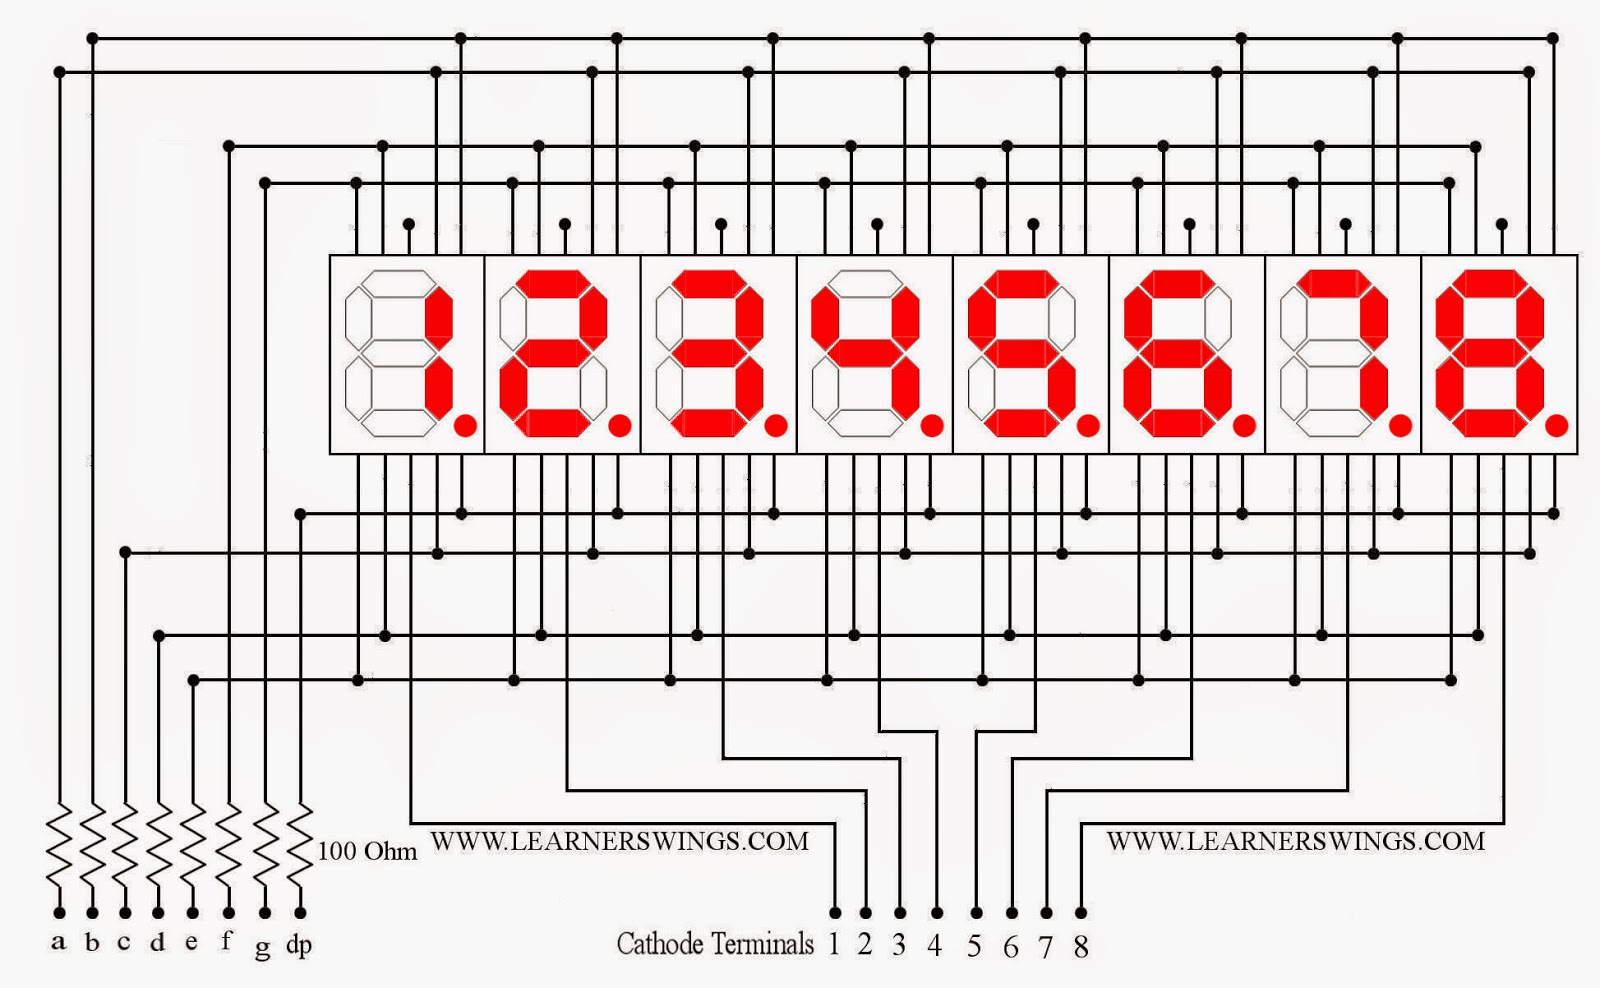 Here we will generate a program that will display 1, 2, 3, 4, 5, 6, 7 and 8  together in the seven segment display cluster as given below.